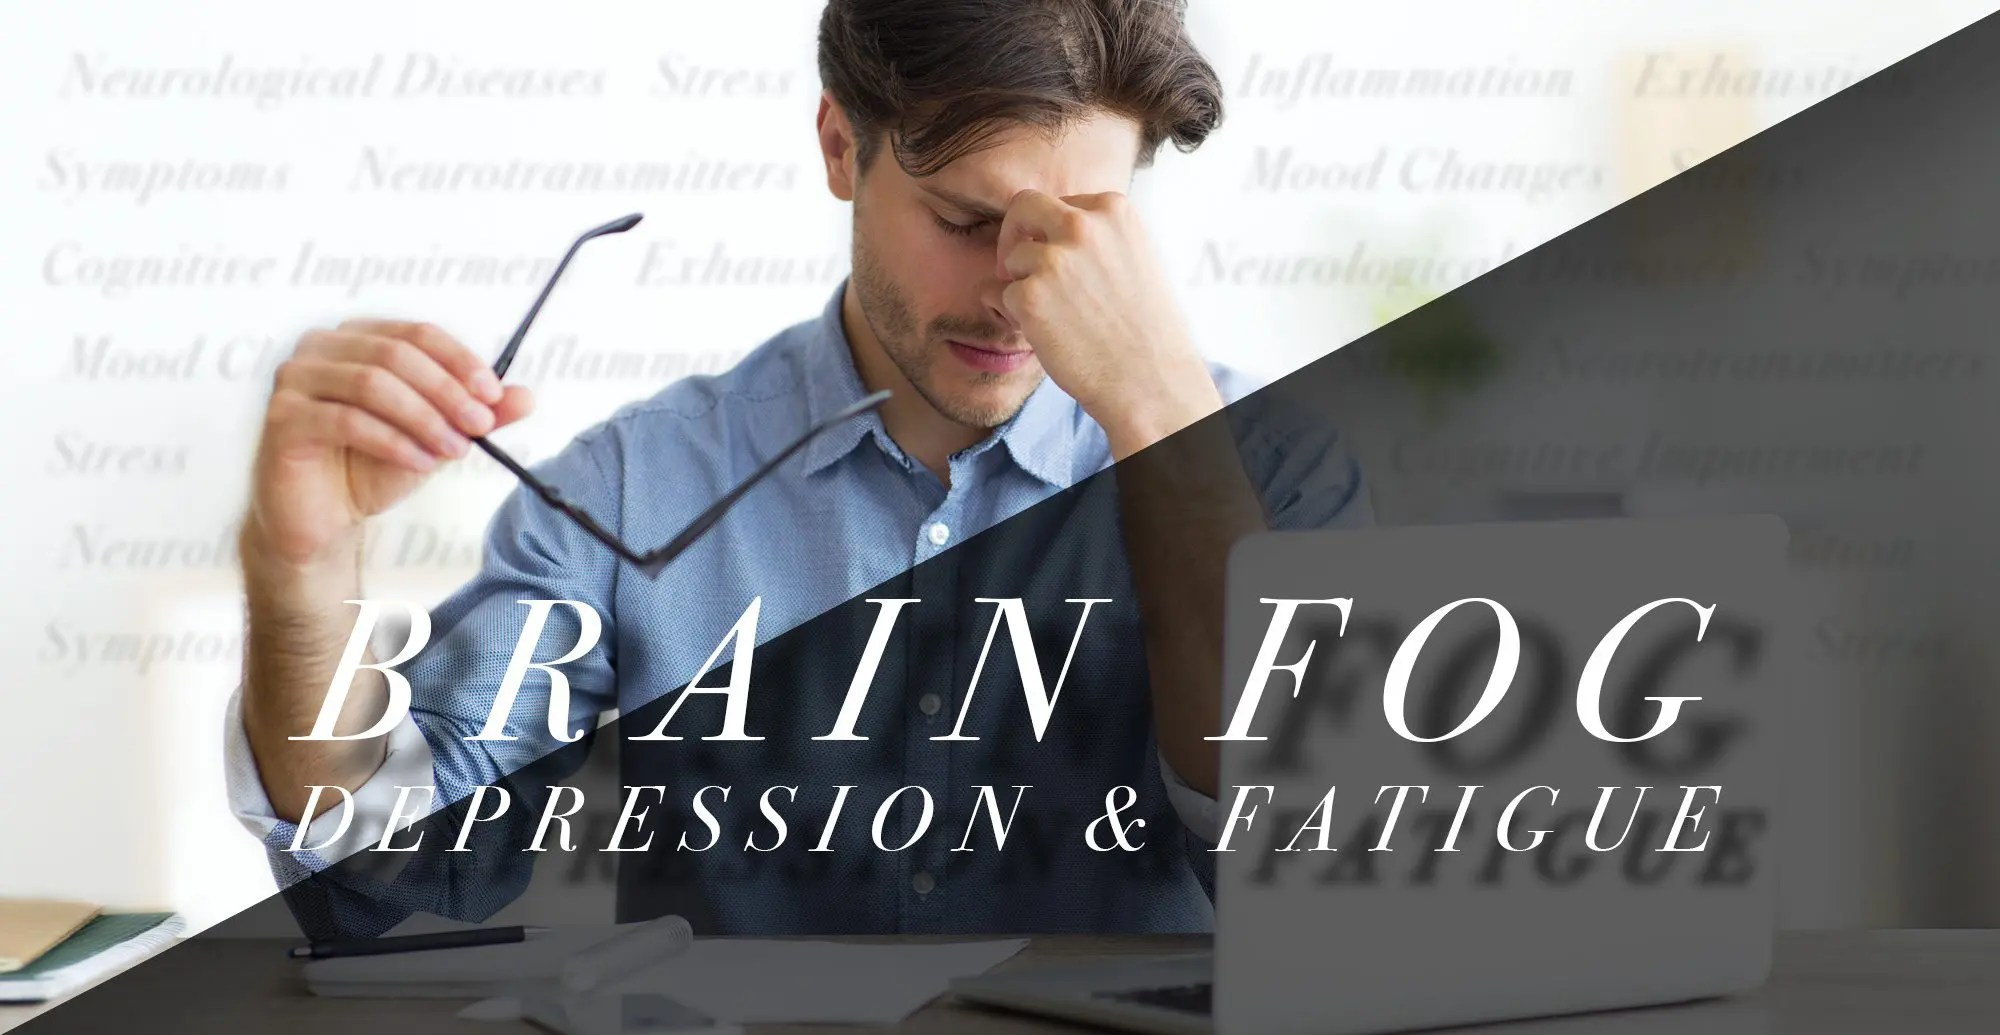 Functional Neurology: Brain Fog, Depression, and Fatigue